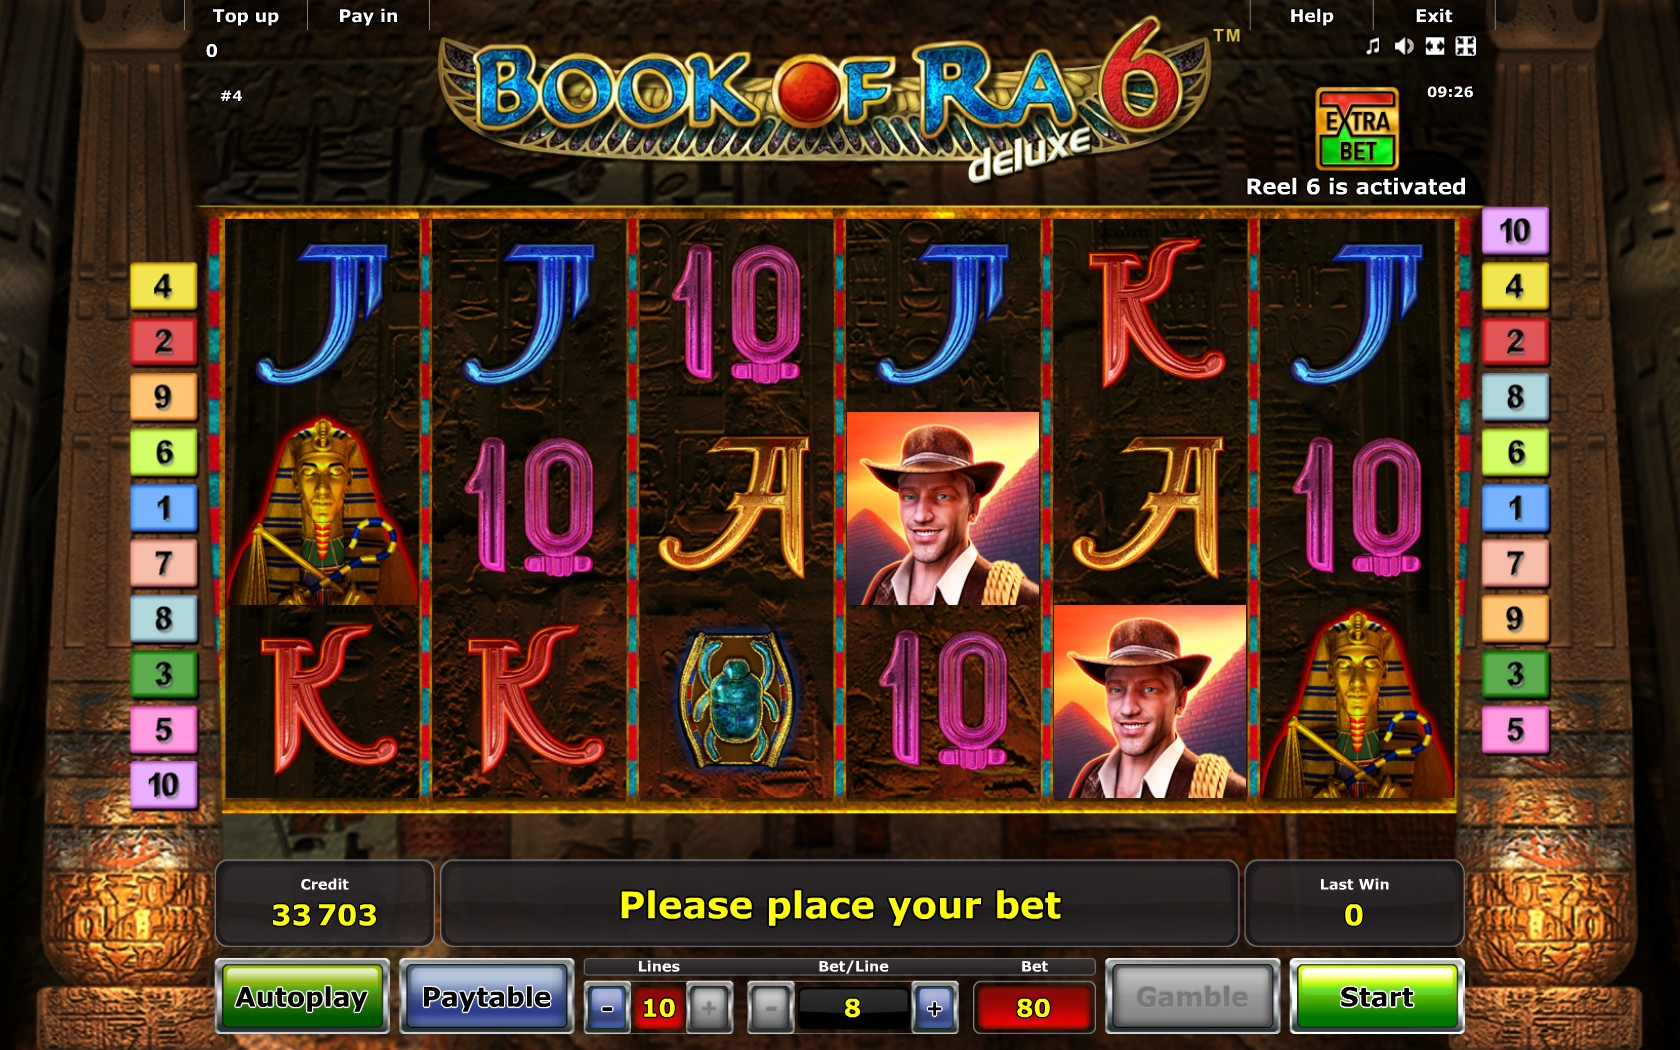 gambling casino online bonus book of ra deluxe free play